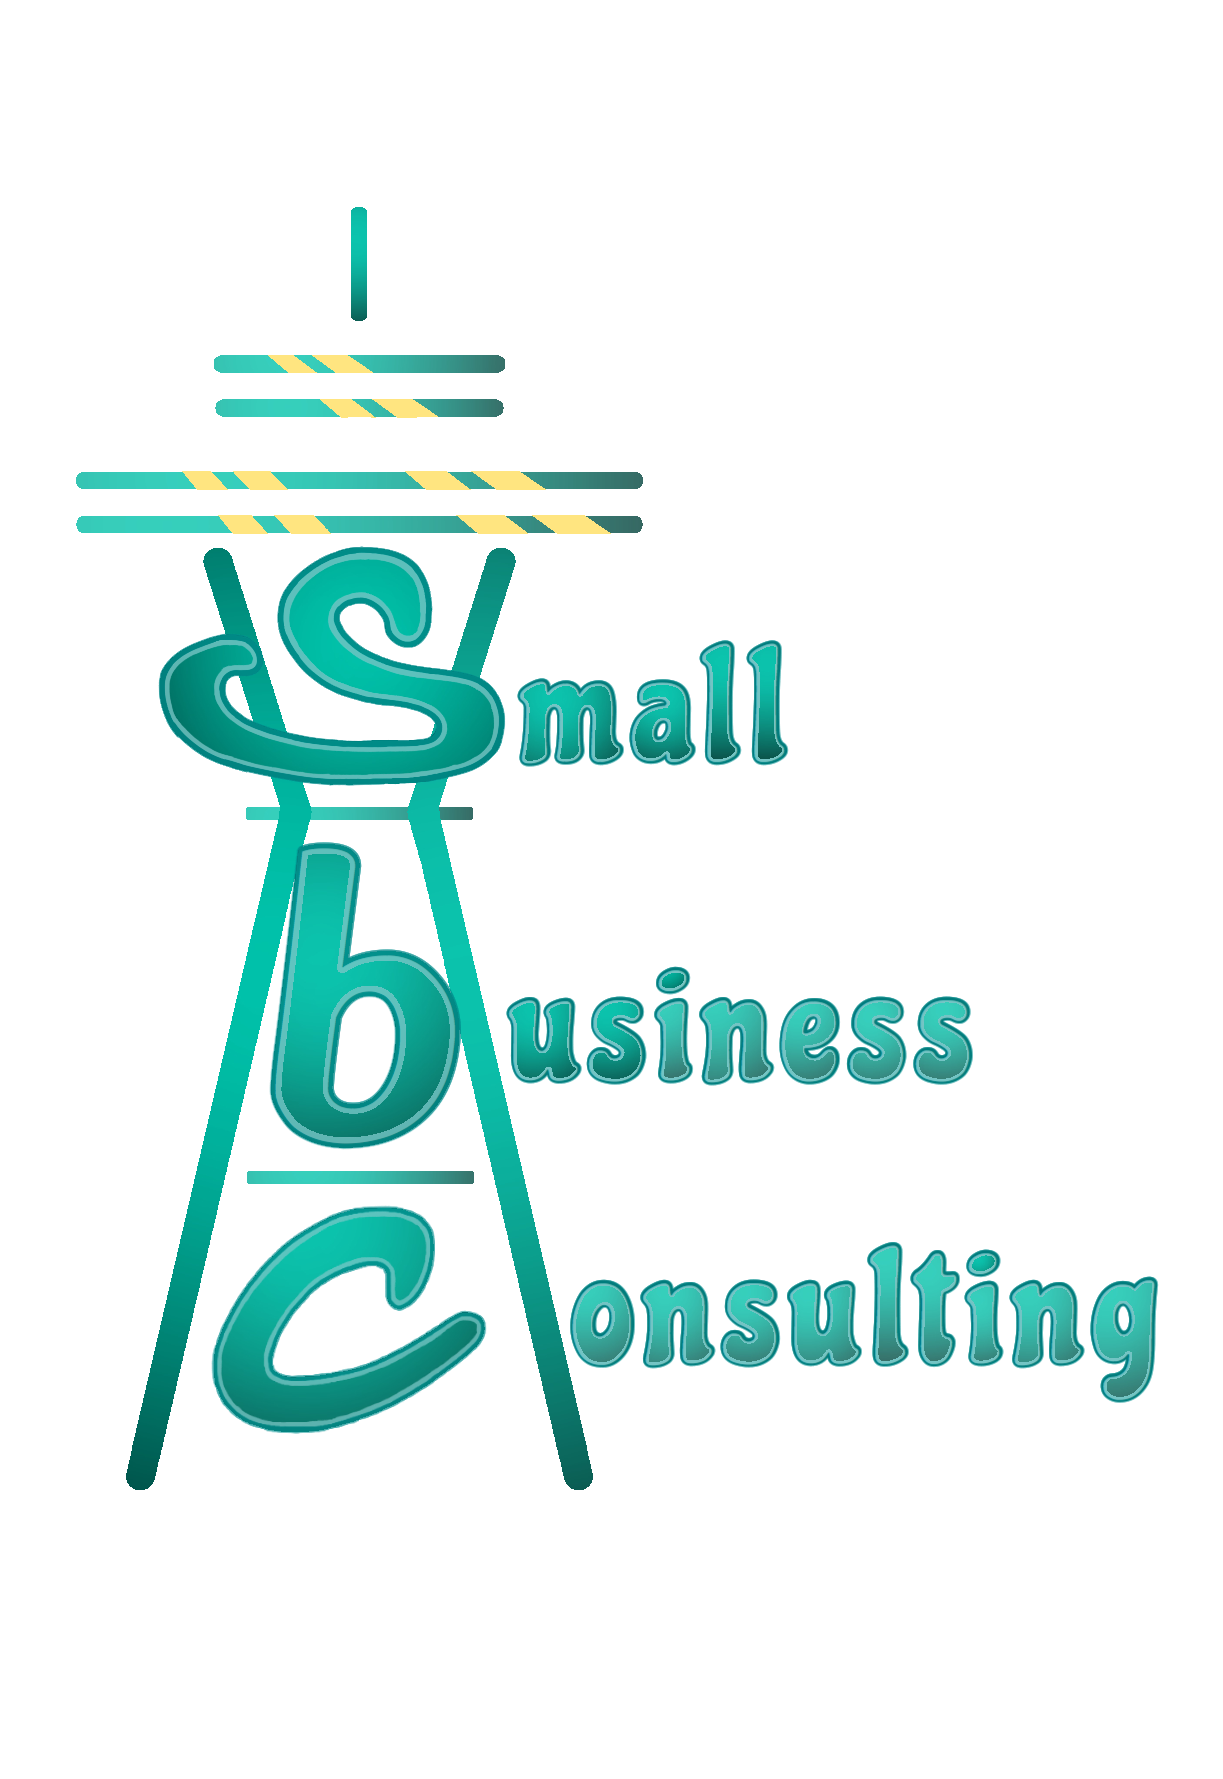 Seattle Small Business Consulting